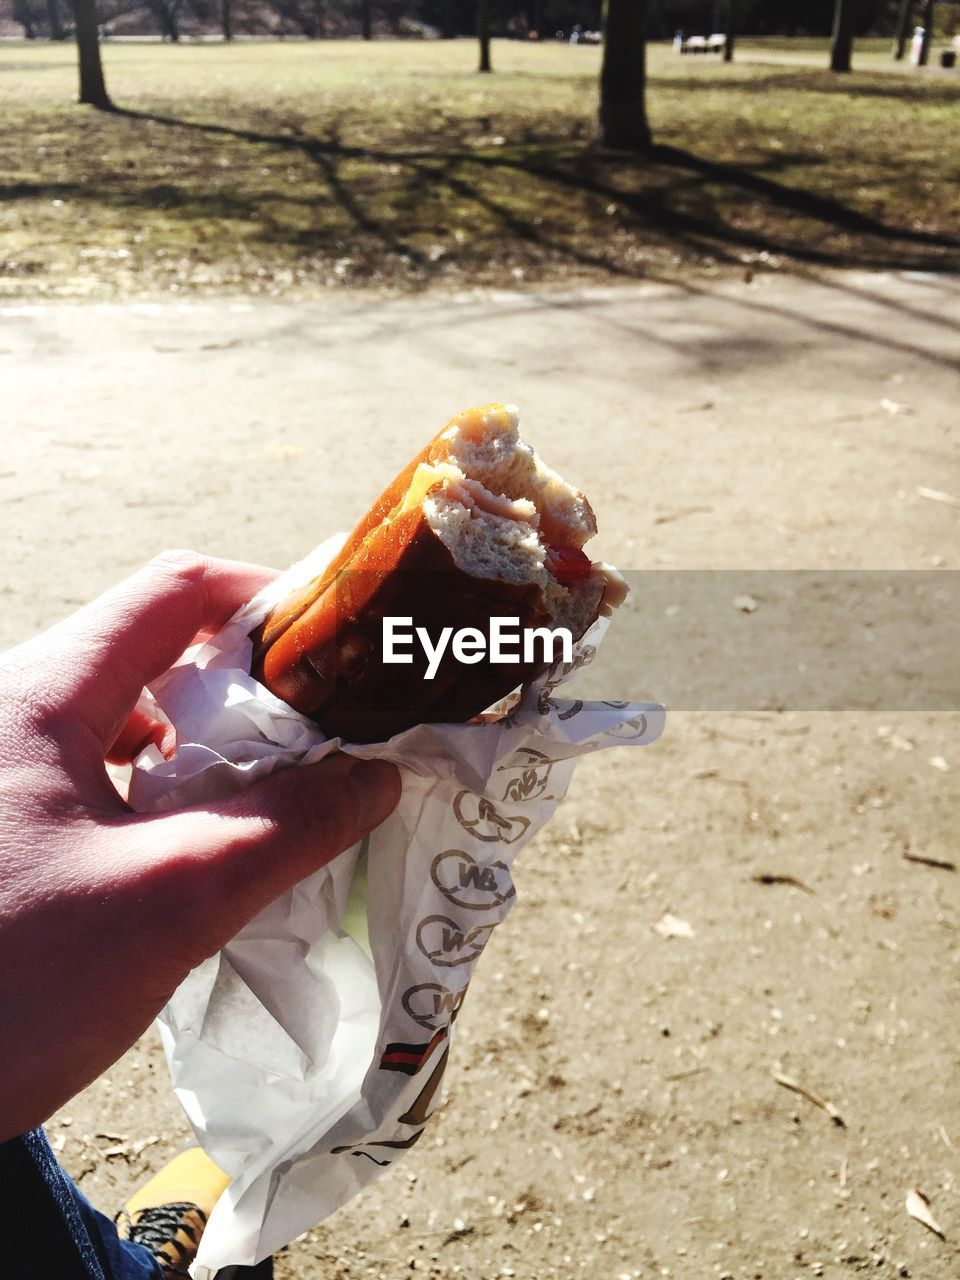 human hand, human body part, one person, holding, real people, food and drink, food, human finger, outdoors, unhealthy eating, take out food, day, lifestyles, women, close-up, freshness, eaten, eating, fast food, hot dog, ready-to-eat, people